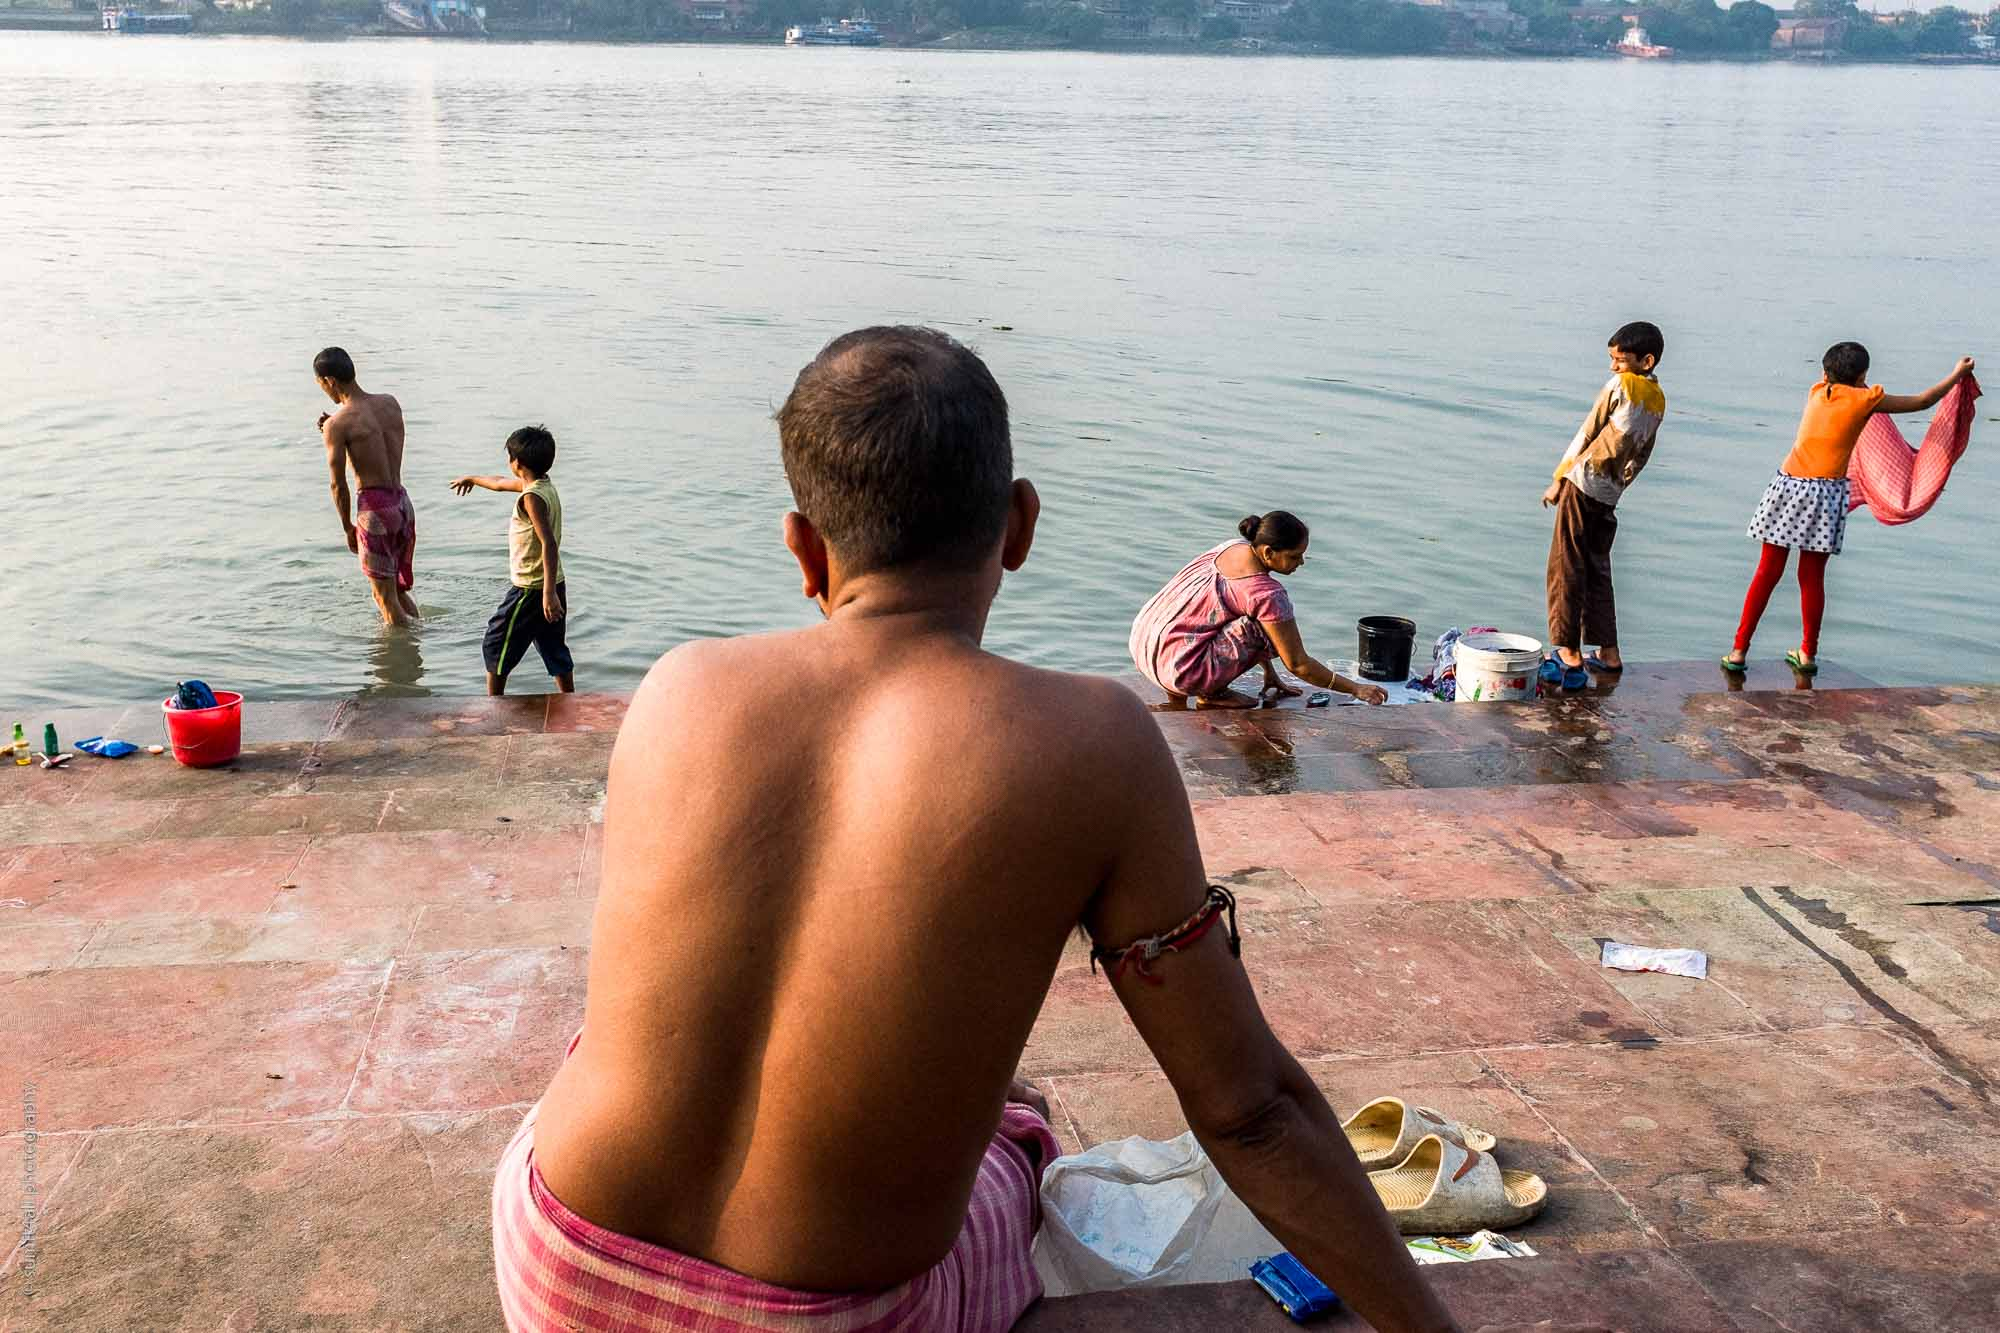 Activity on the ghats near the Hooghly River in Kolkata